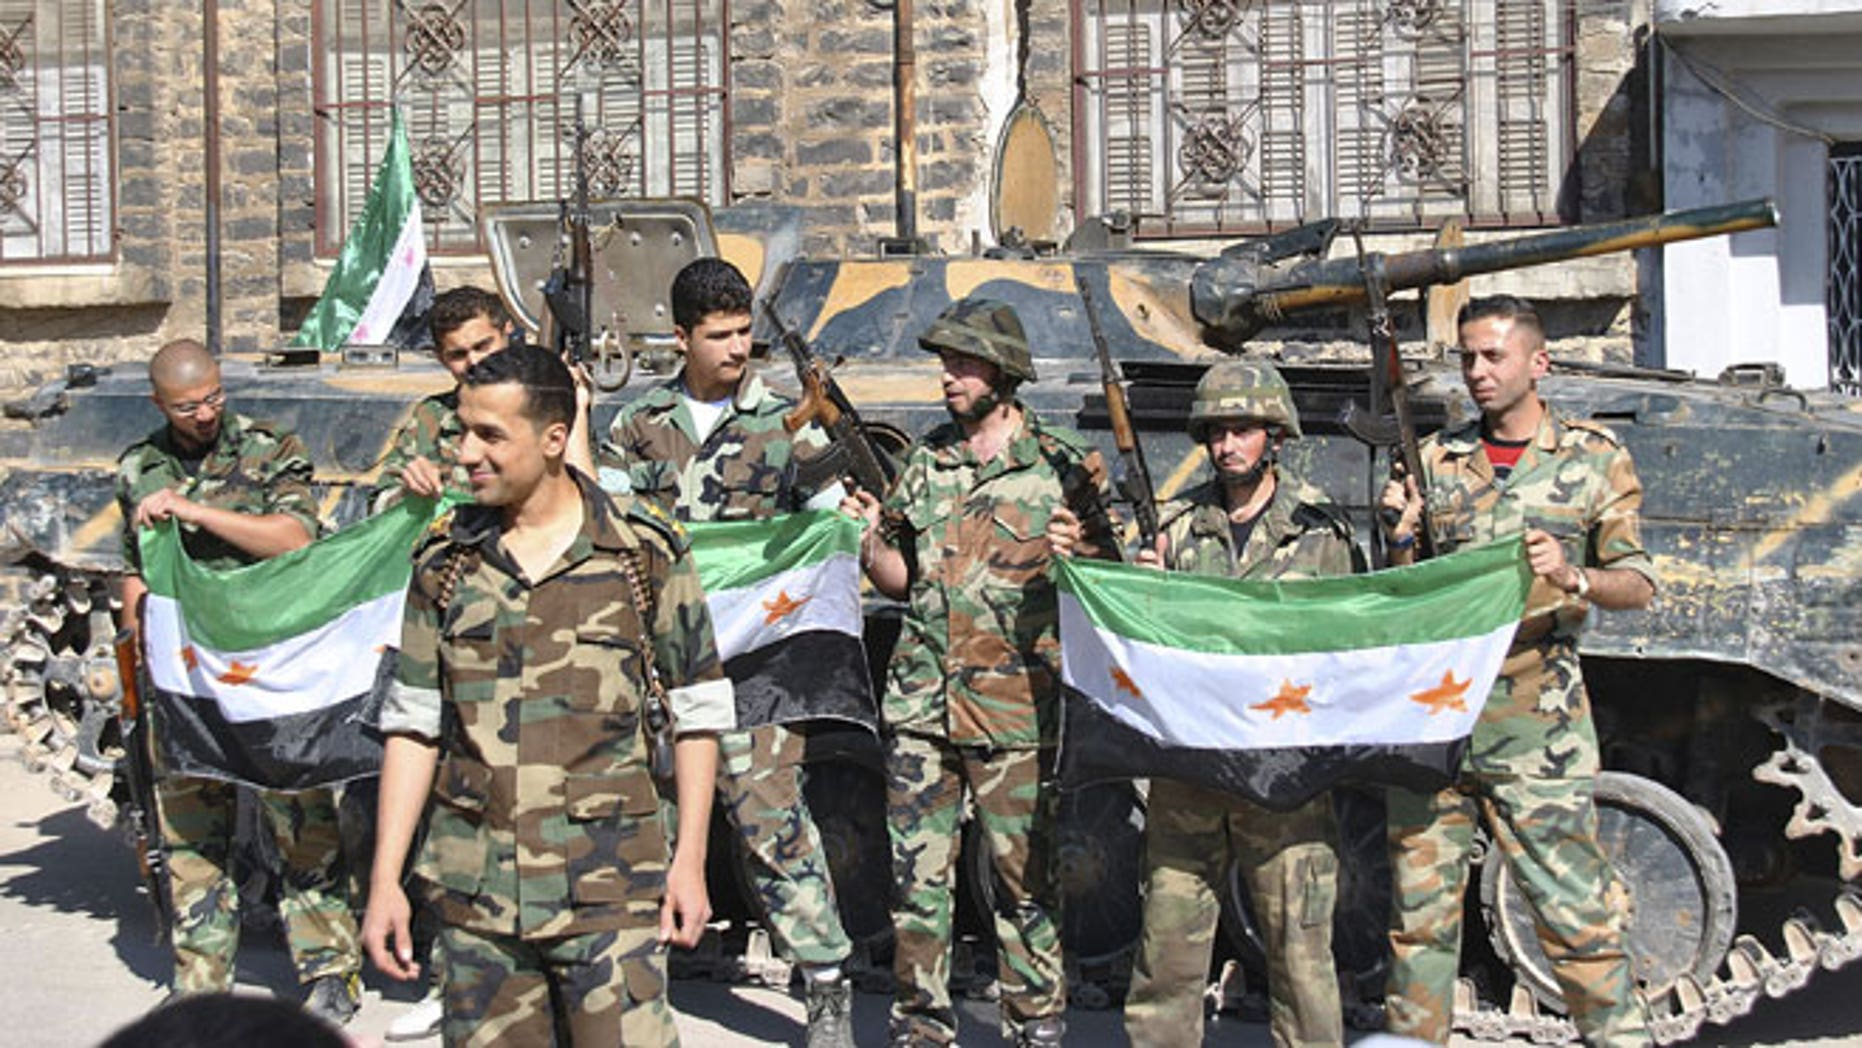 May 12, 2012: Syrian army soldiers hold the Syrian revolution flags as they stand in front their armored personnel carrier shortly after they defected and joined the rebels at Khaldiyeh neighborhood, in Homs province, central Syria.